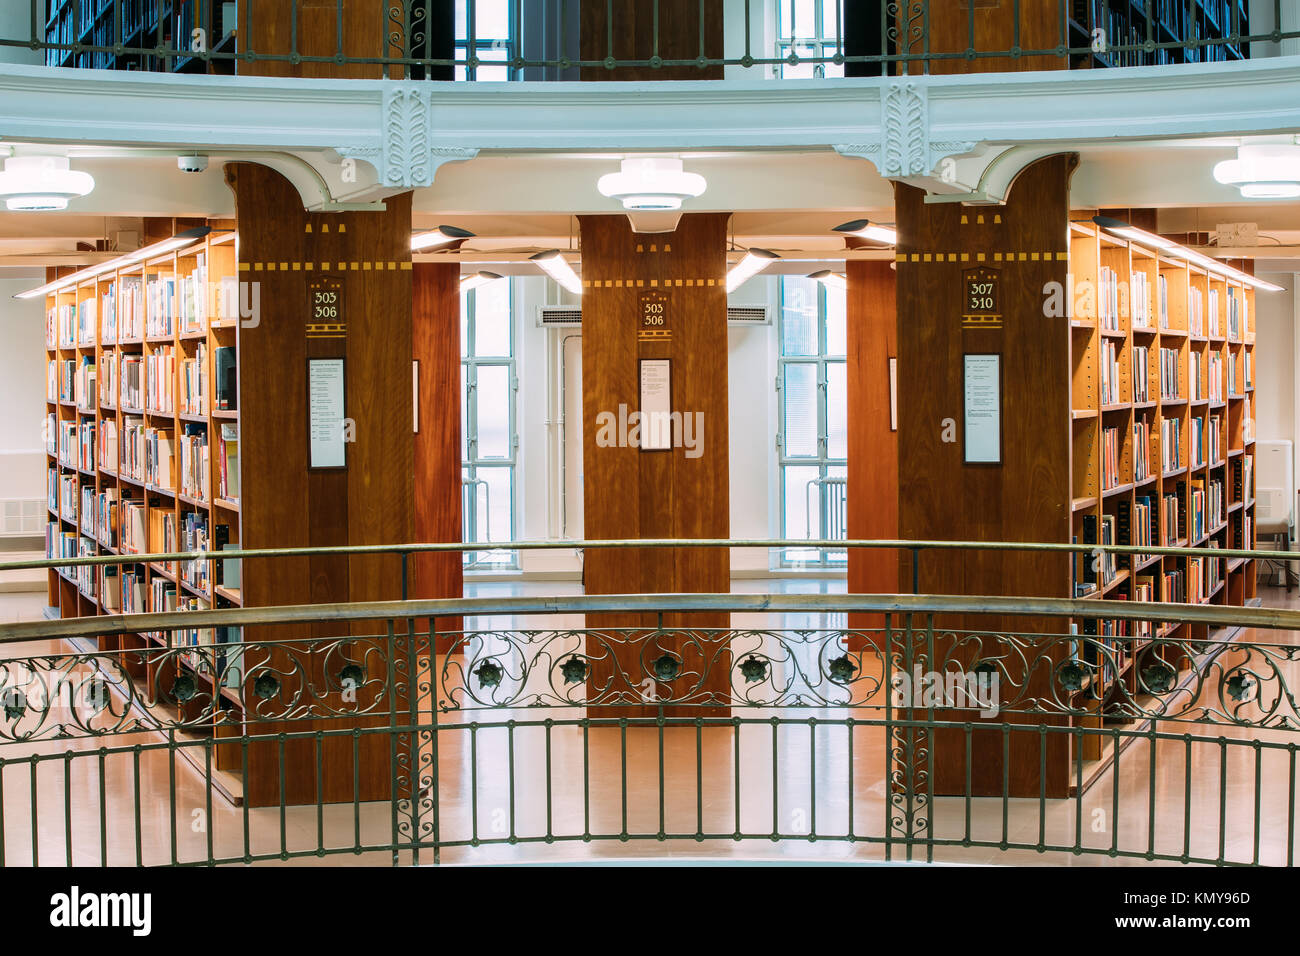 Helsinki, Finland. View Of Floors And Racks With Books In The National Library Of Finland. - Stock Image